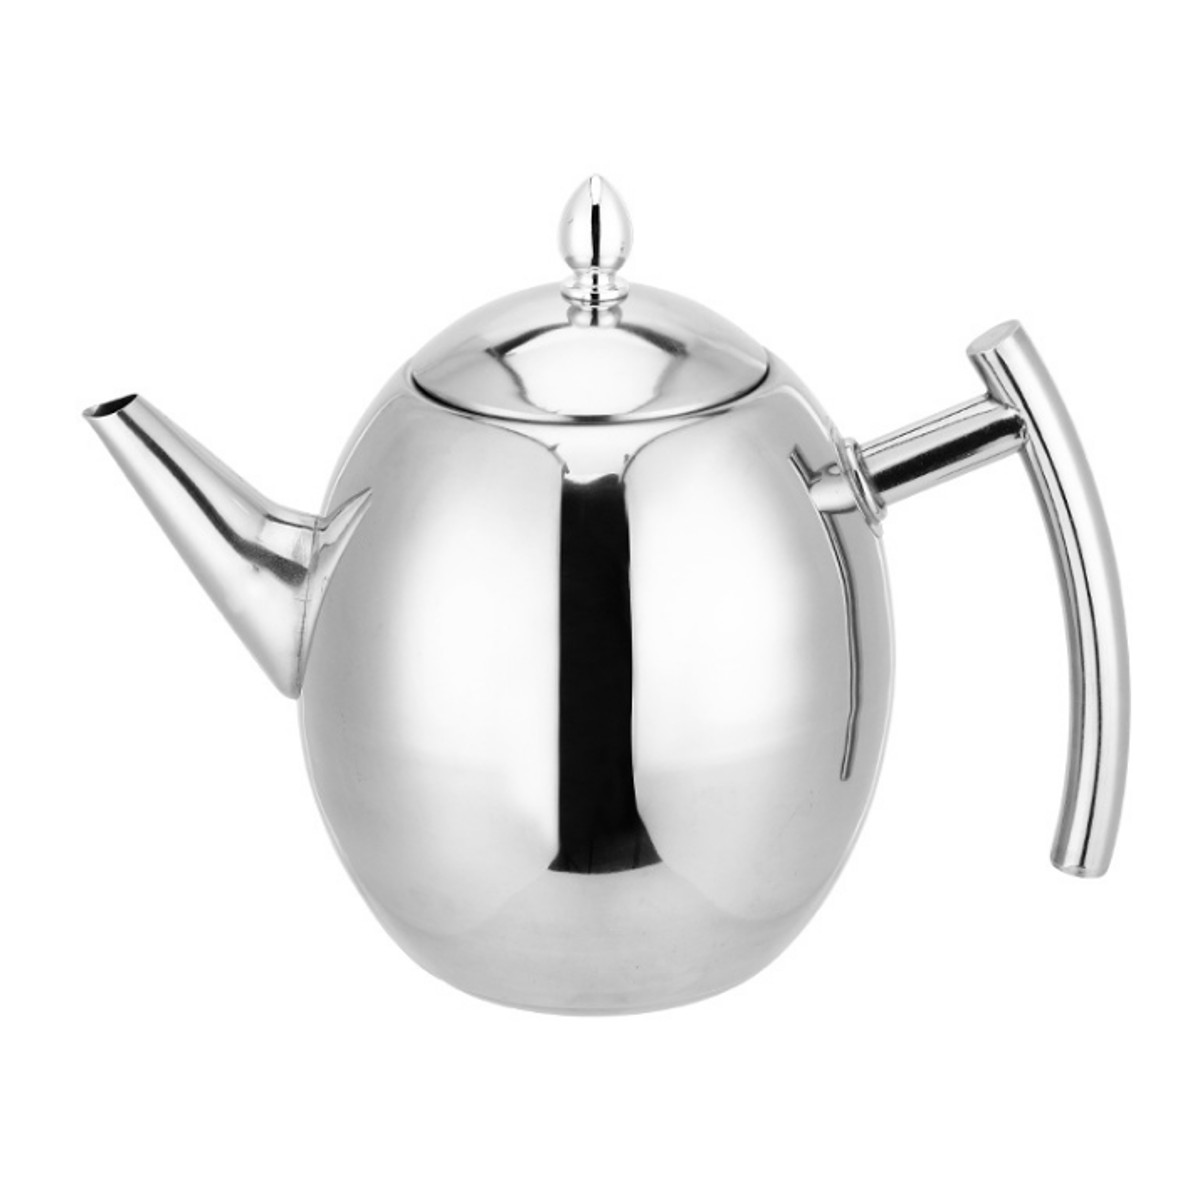 Boxed Black Retro Tea Pot Stainless Steel Teapot 1.5 Litre With Infuser